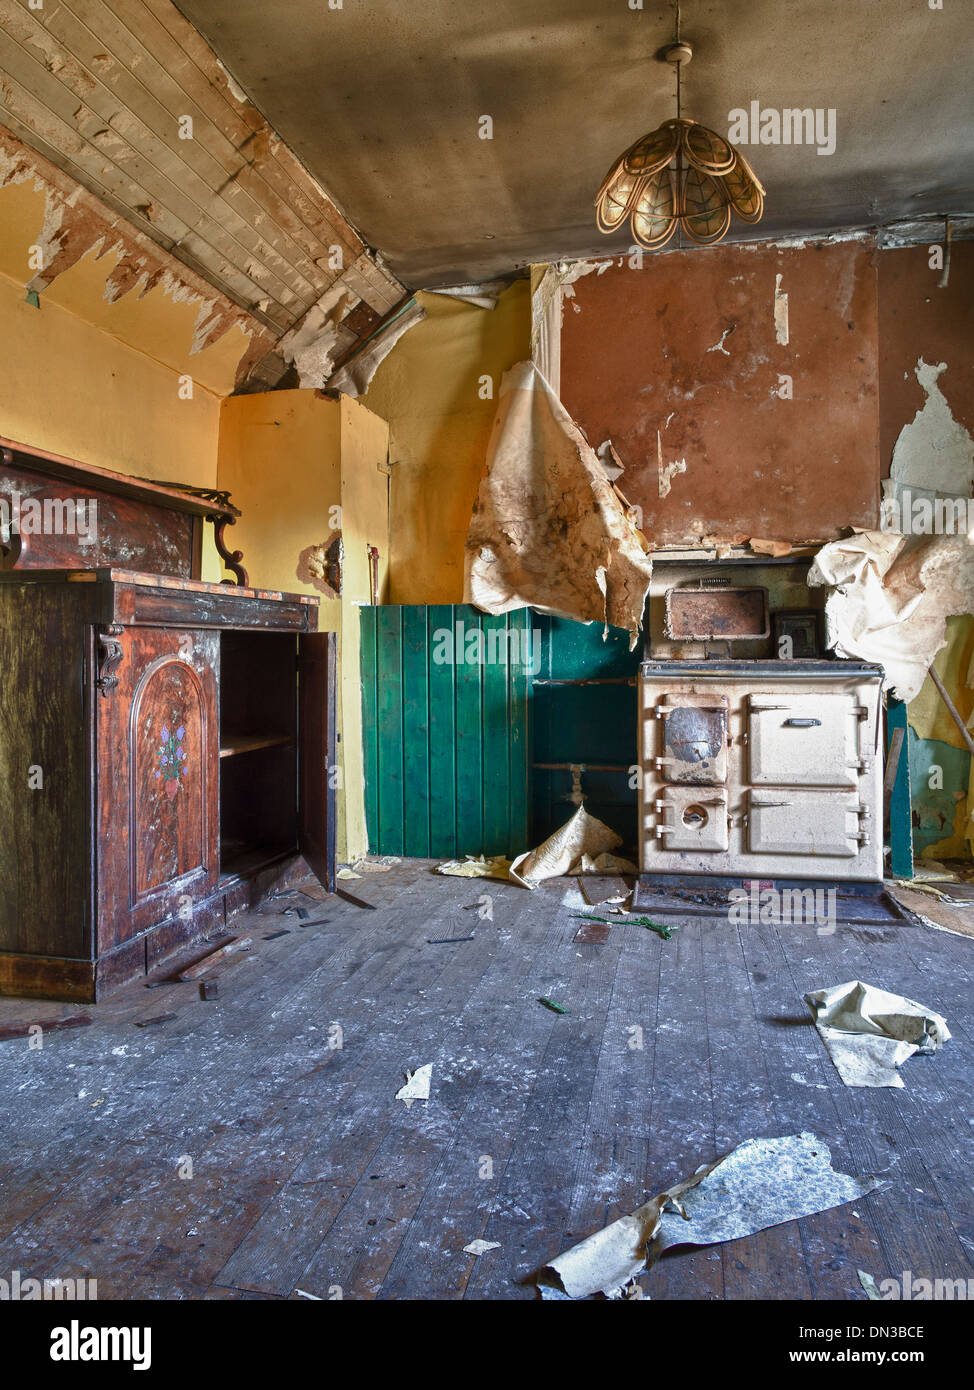 Interior of Abandoned Croft House, North Uist - Stock Image